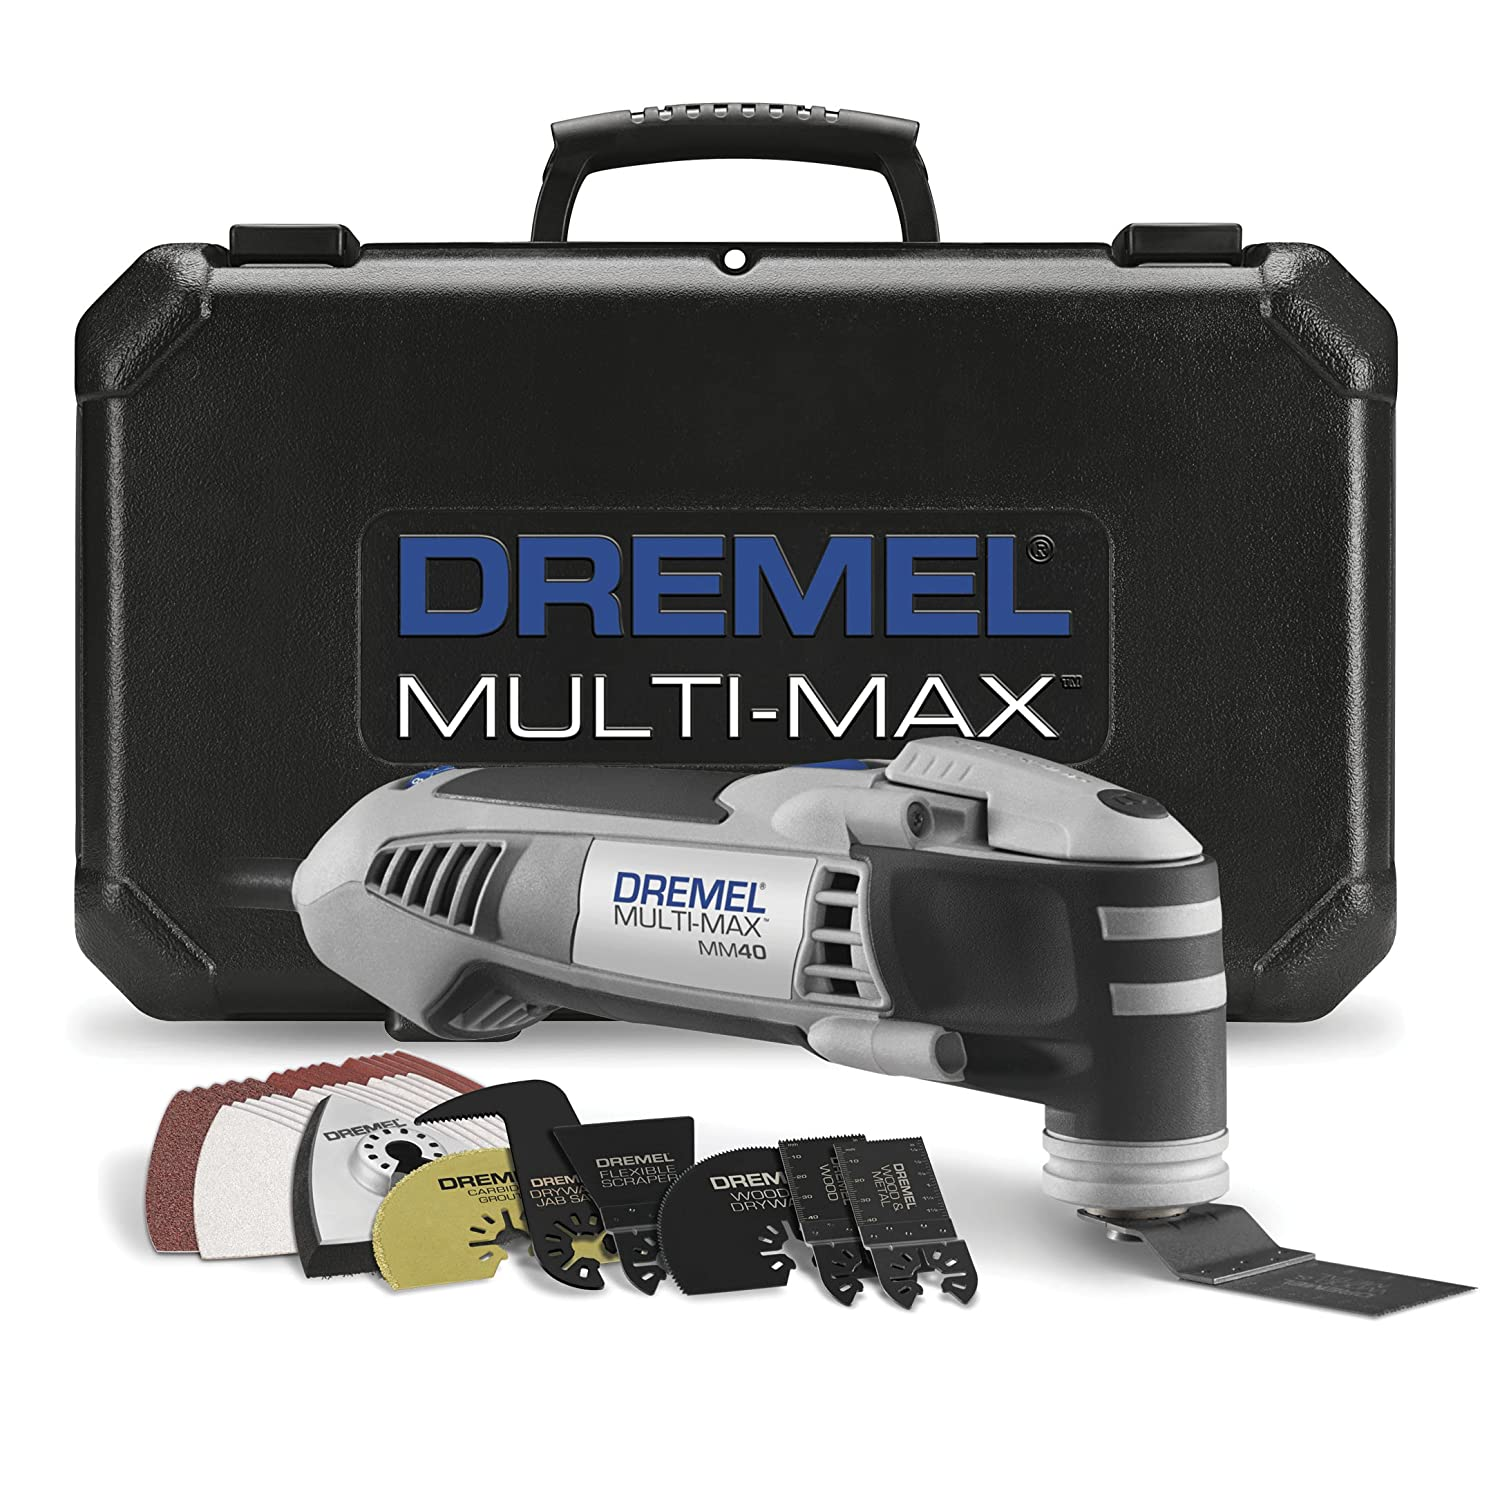 Dremel MM40-05 Multi-Max 3.8-Amp Oscillating Tool Kit